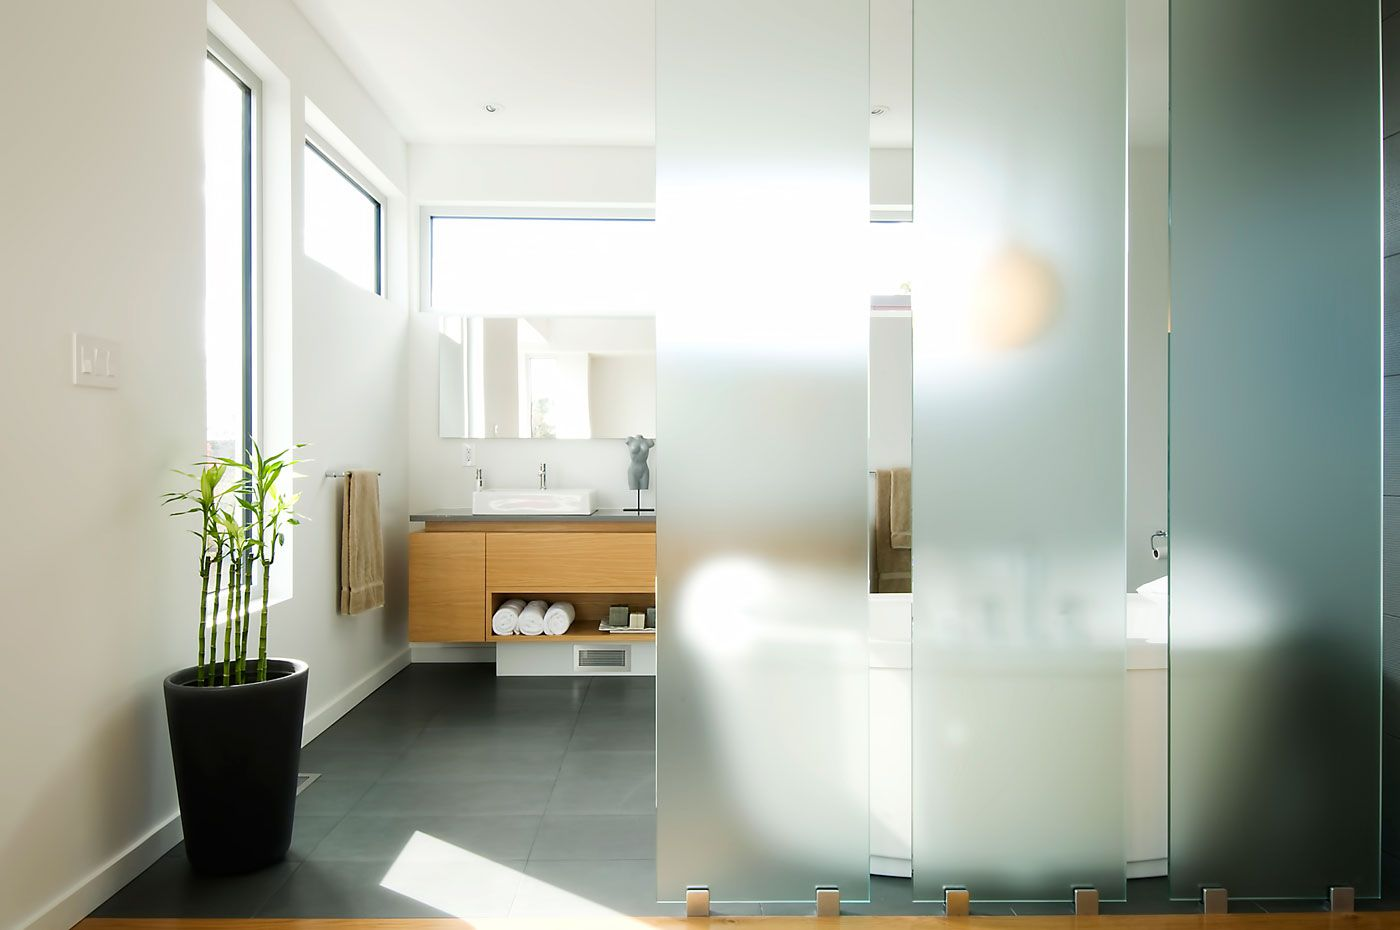 Great Bathroom Suppliers London Ontario Tall Can You Have A Spa Bath When Your Pregnant Square Real Wood Bathroom Storage Cabinets Average Cost Of Refinishing Bathtub Youthful Ideas To Redo Bathroom Cabinets ColouredBathtub With Integrated Seat Bathroom Cabinets Austin